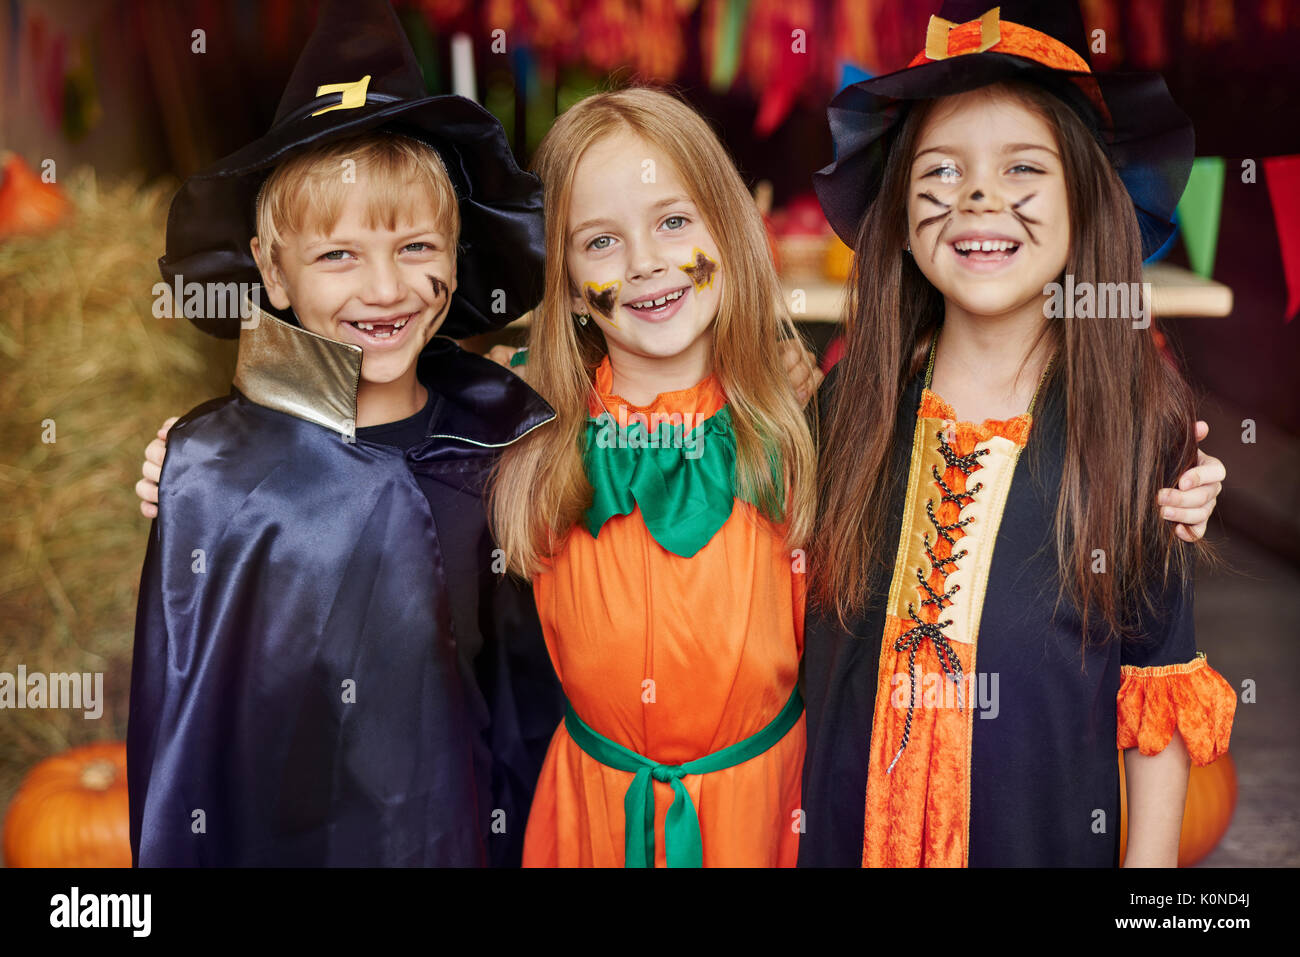 Cheerful children with Halloween face paint - Stock Image